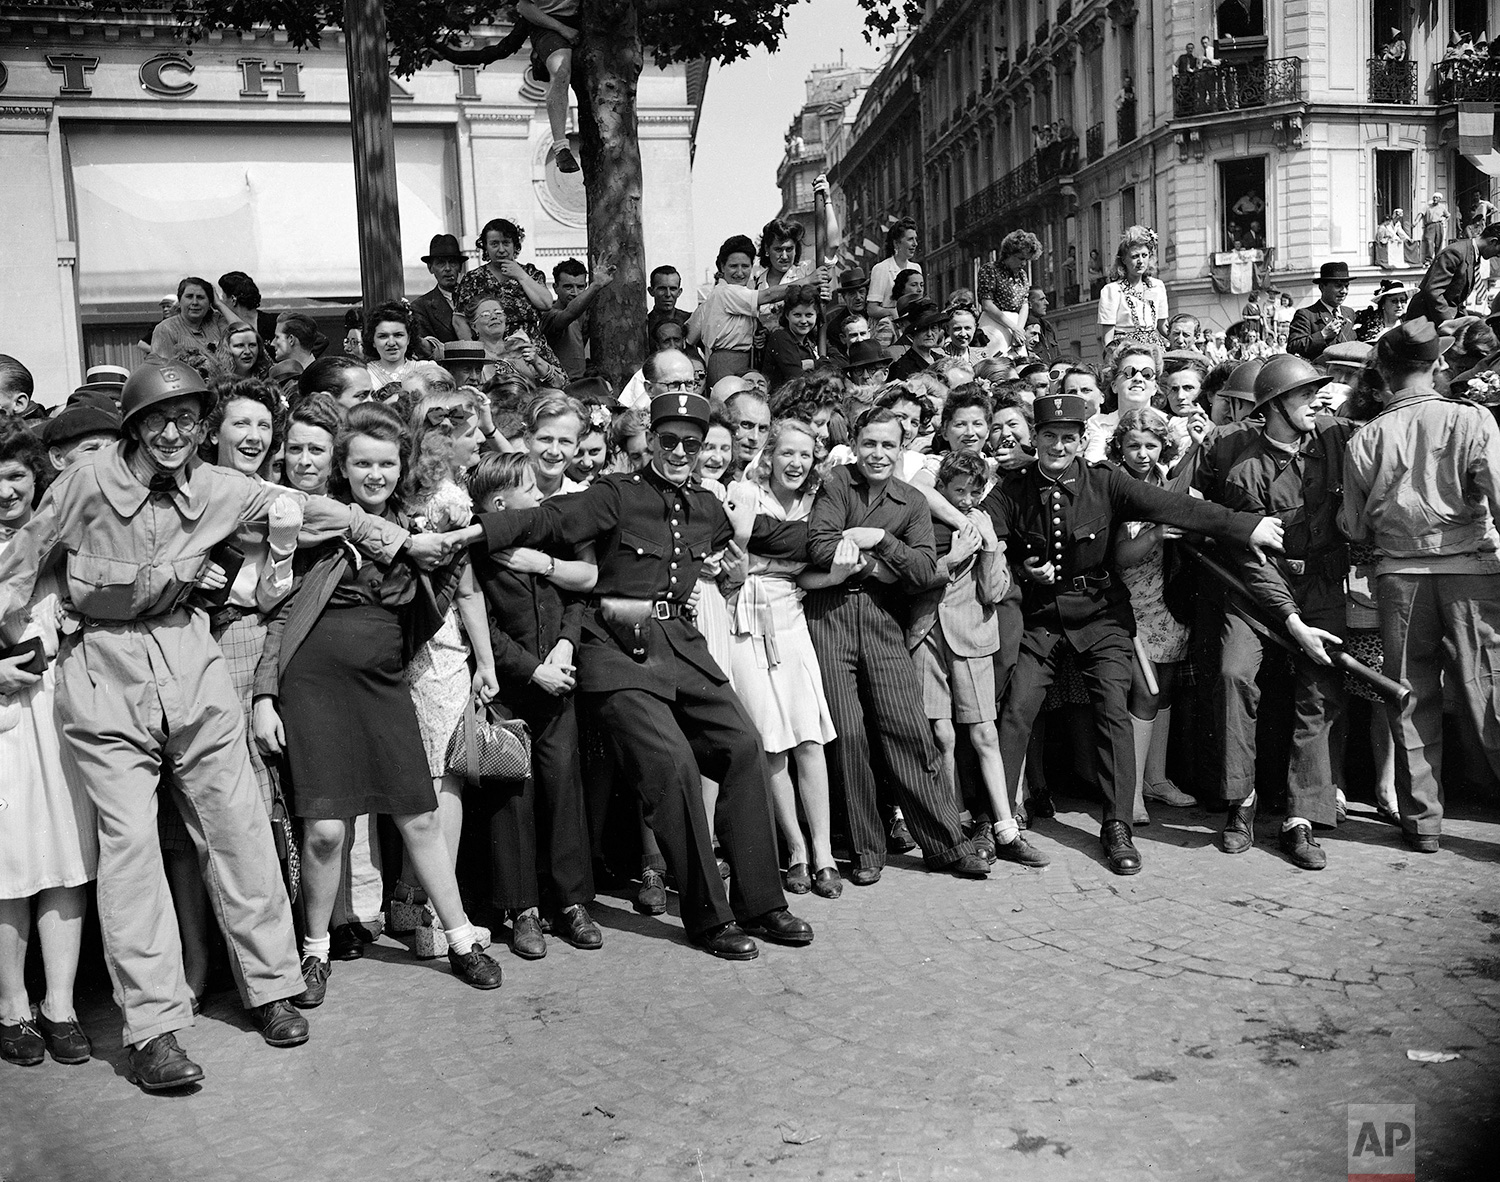 Gendarmes and F.F.I. seem to enjoy the task of holding back crowds of people as they throng the streets to see General Charles De Gaulle, Aug. 26, 1944. (AP Photo/Laurence Harris)